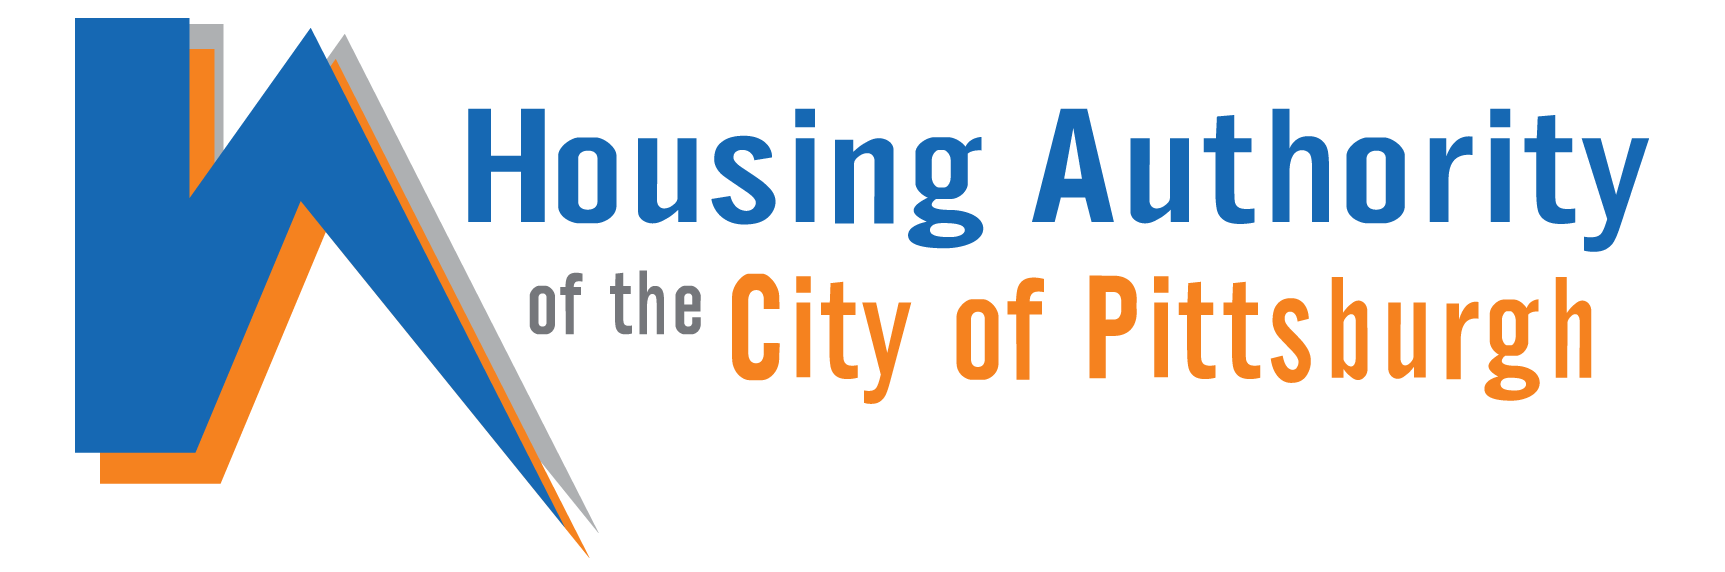 Home - Housing Authority of the City of Pittsburgh